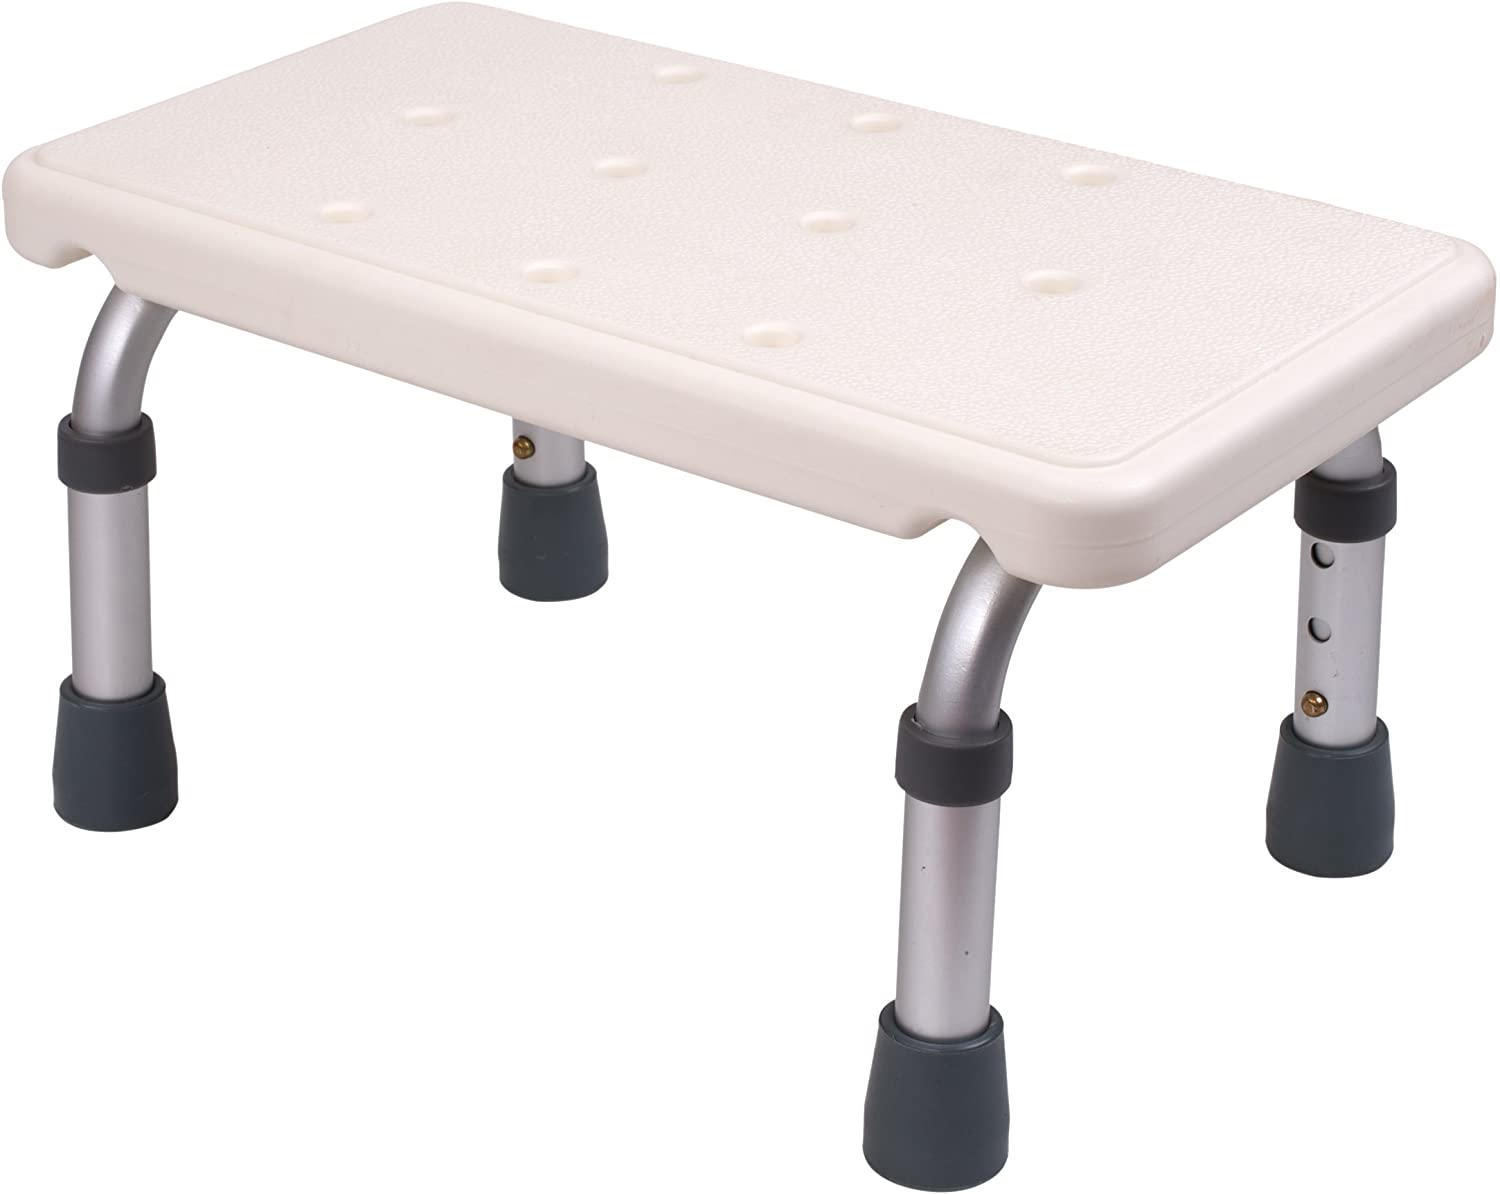 Medokare Adjustable Foot Stool Stepping Stool For Adults And Childre Medokare